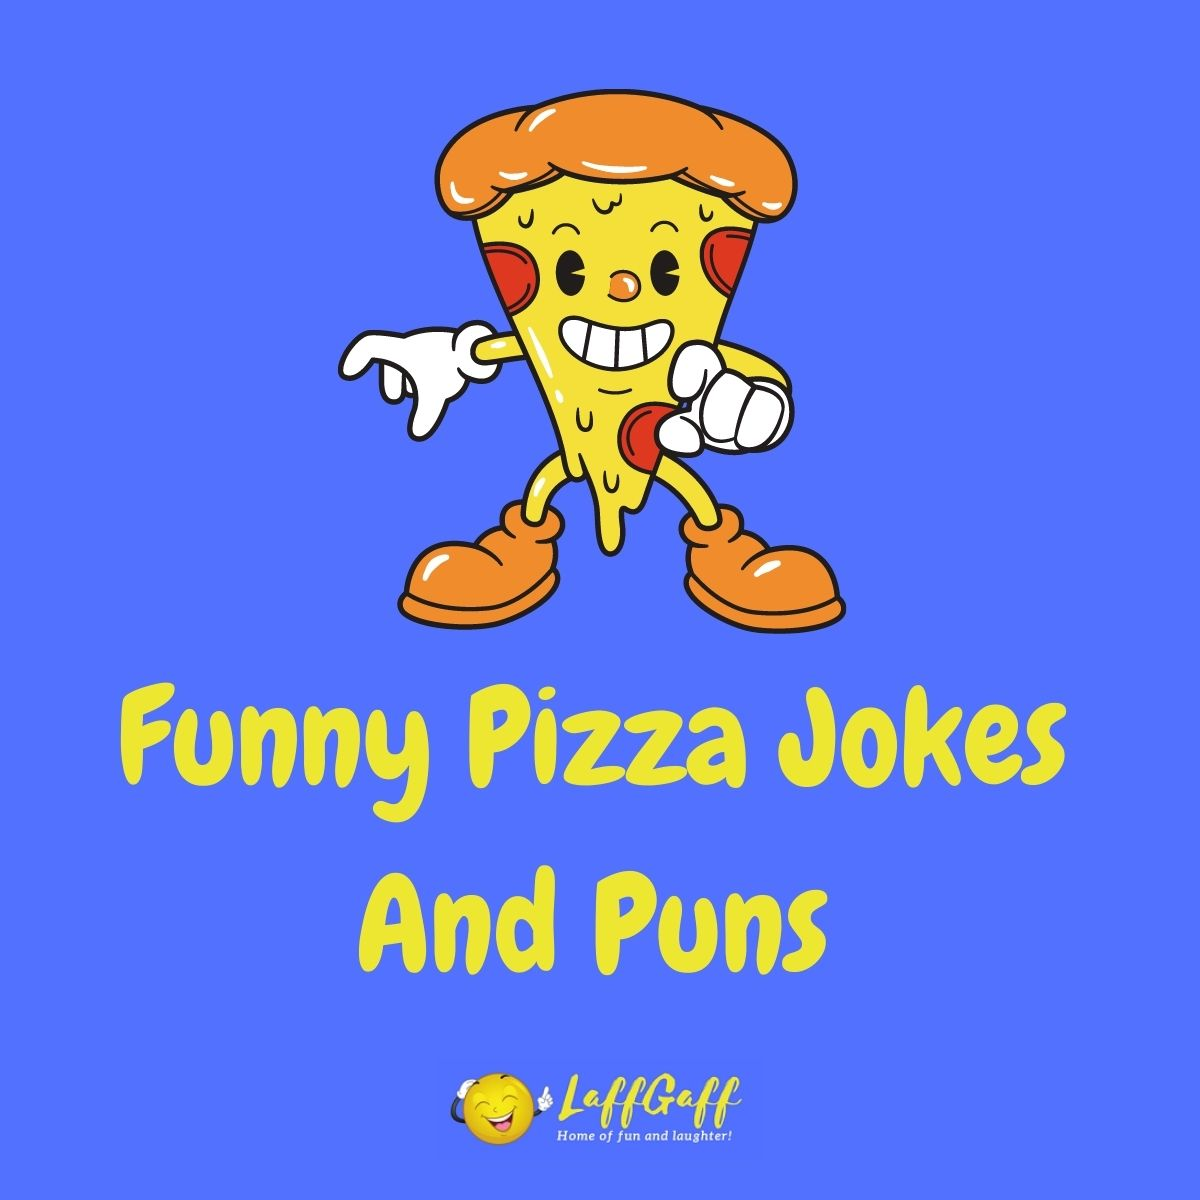 Featured image for a page of funny pizza jokes and puns.